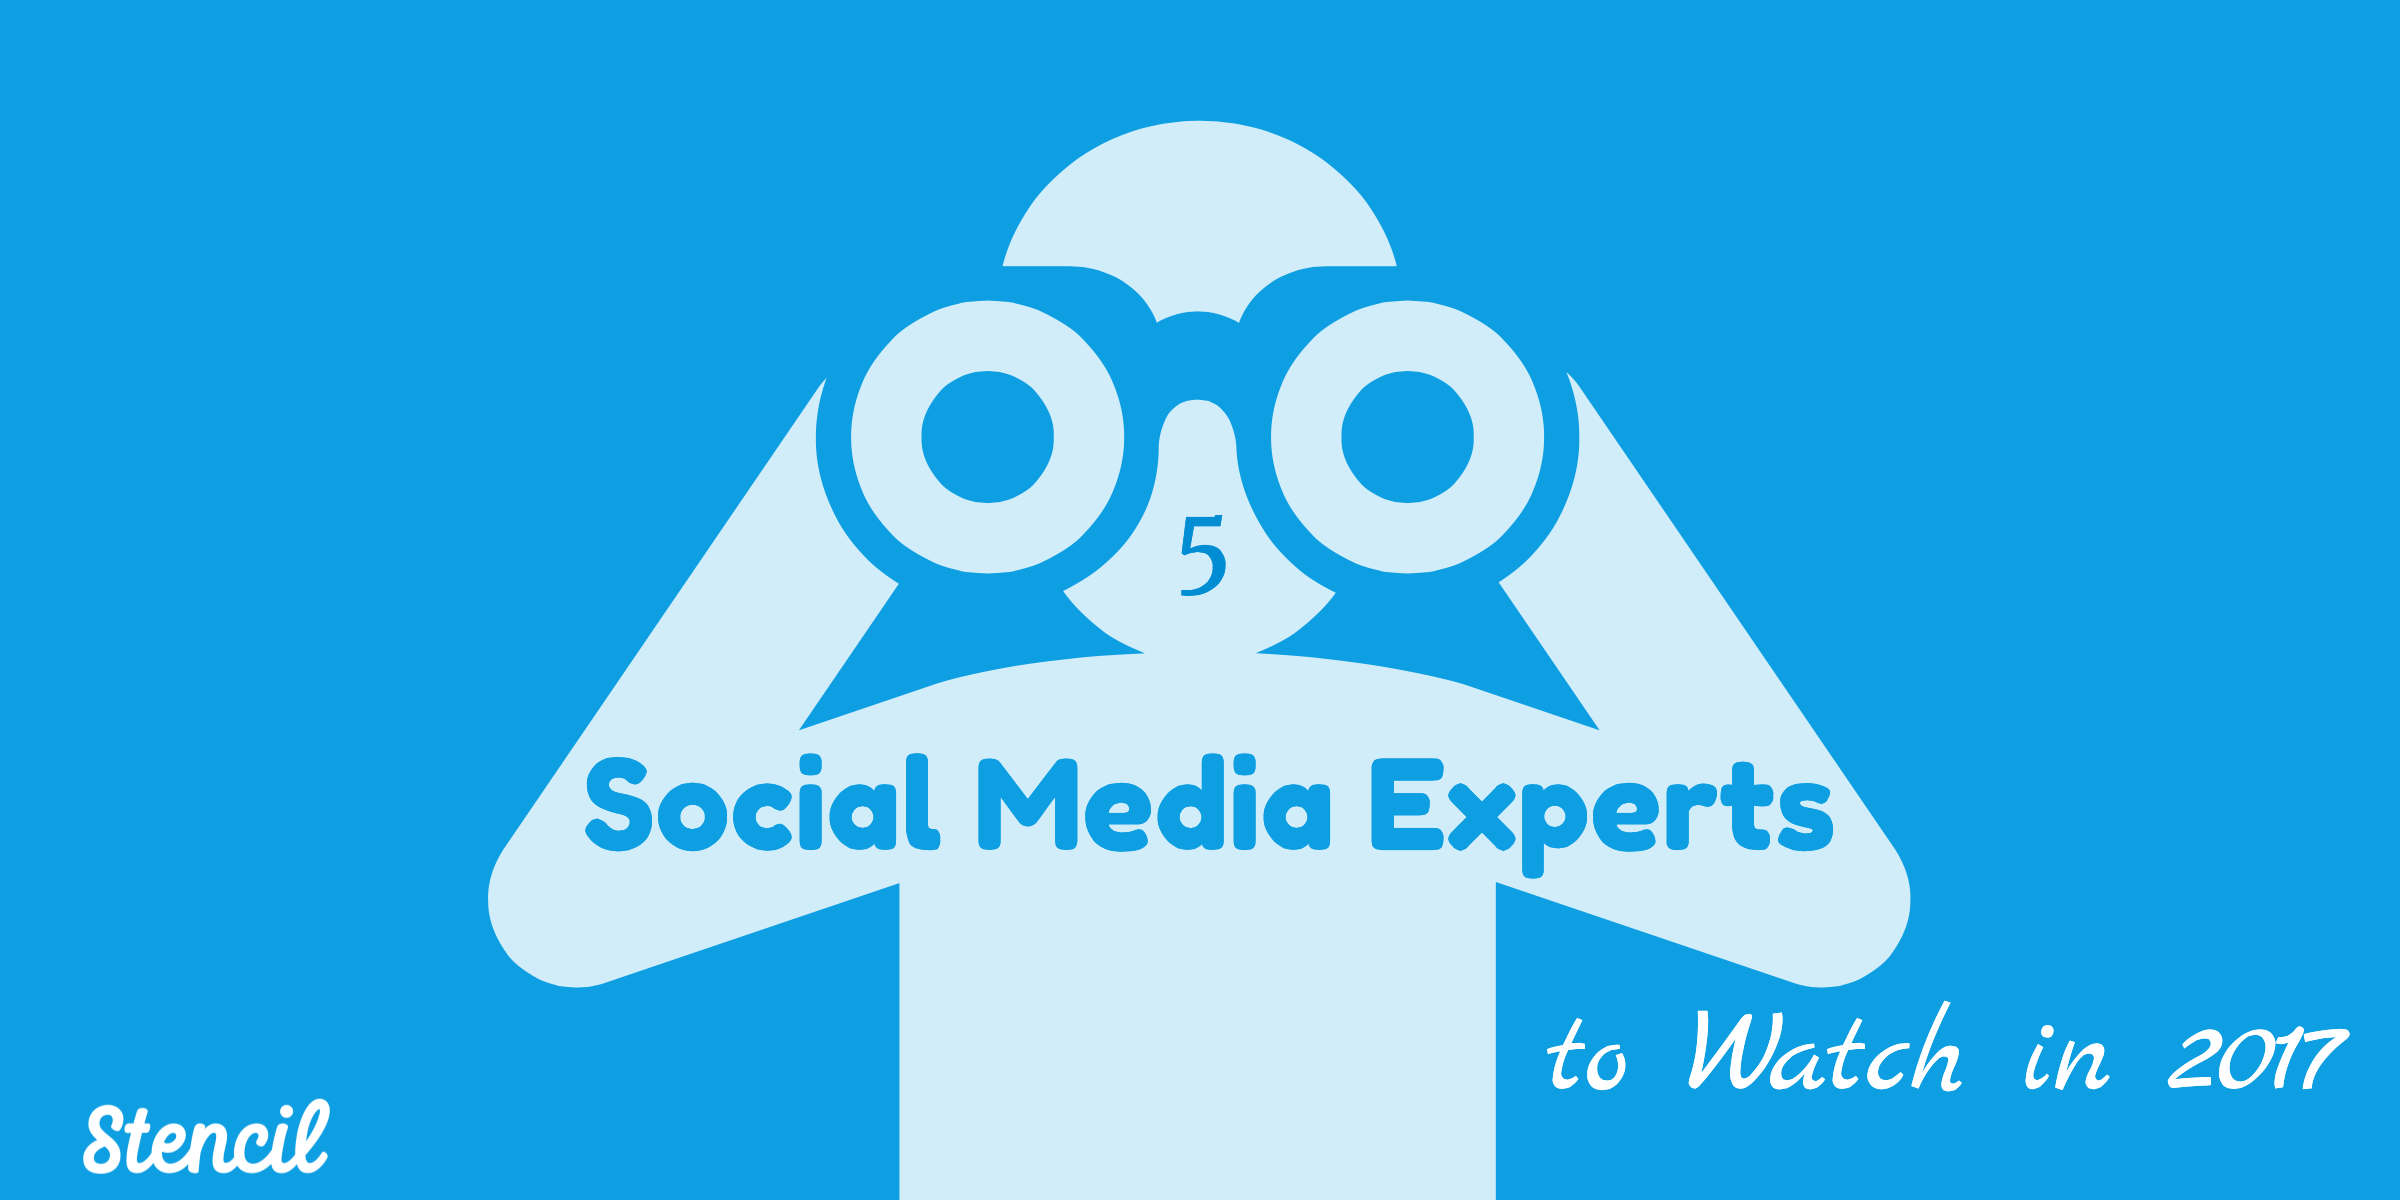 5 Social Media Experts to Watch in 2017 via Stencil